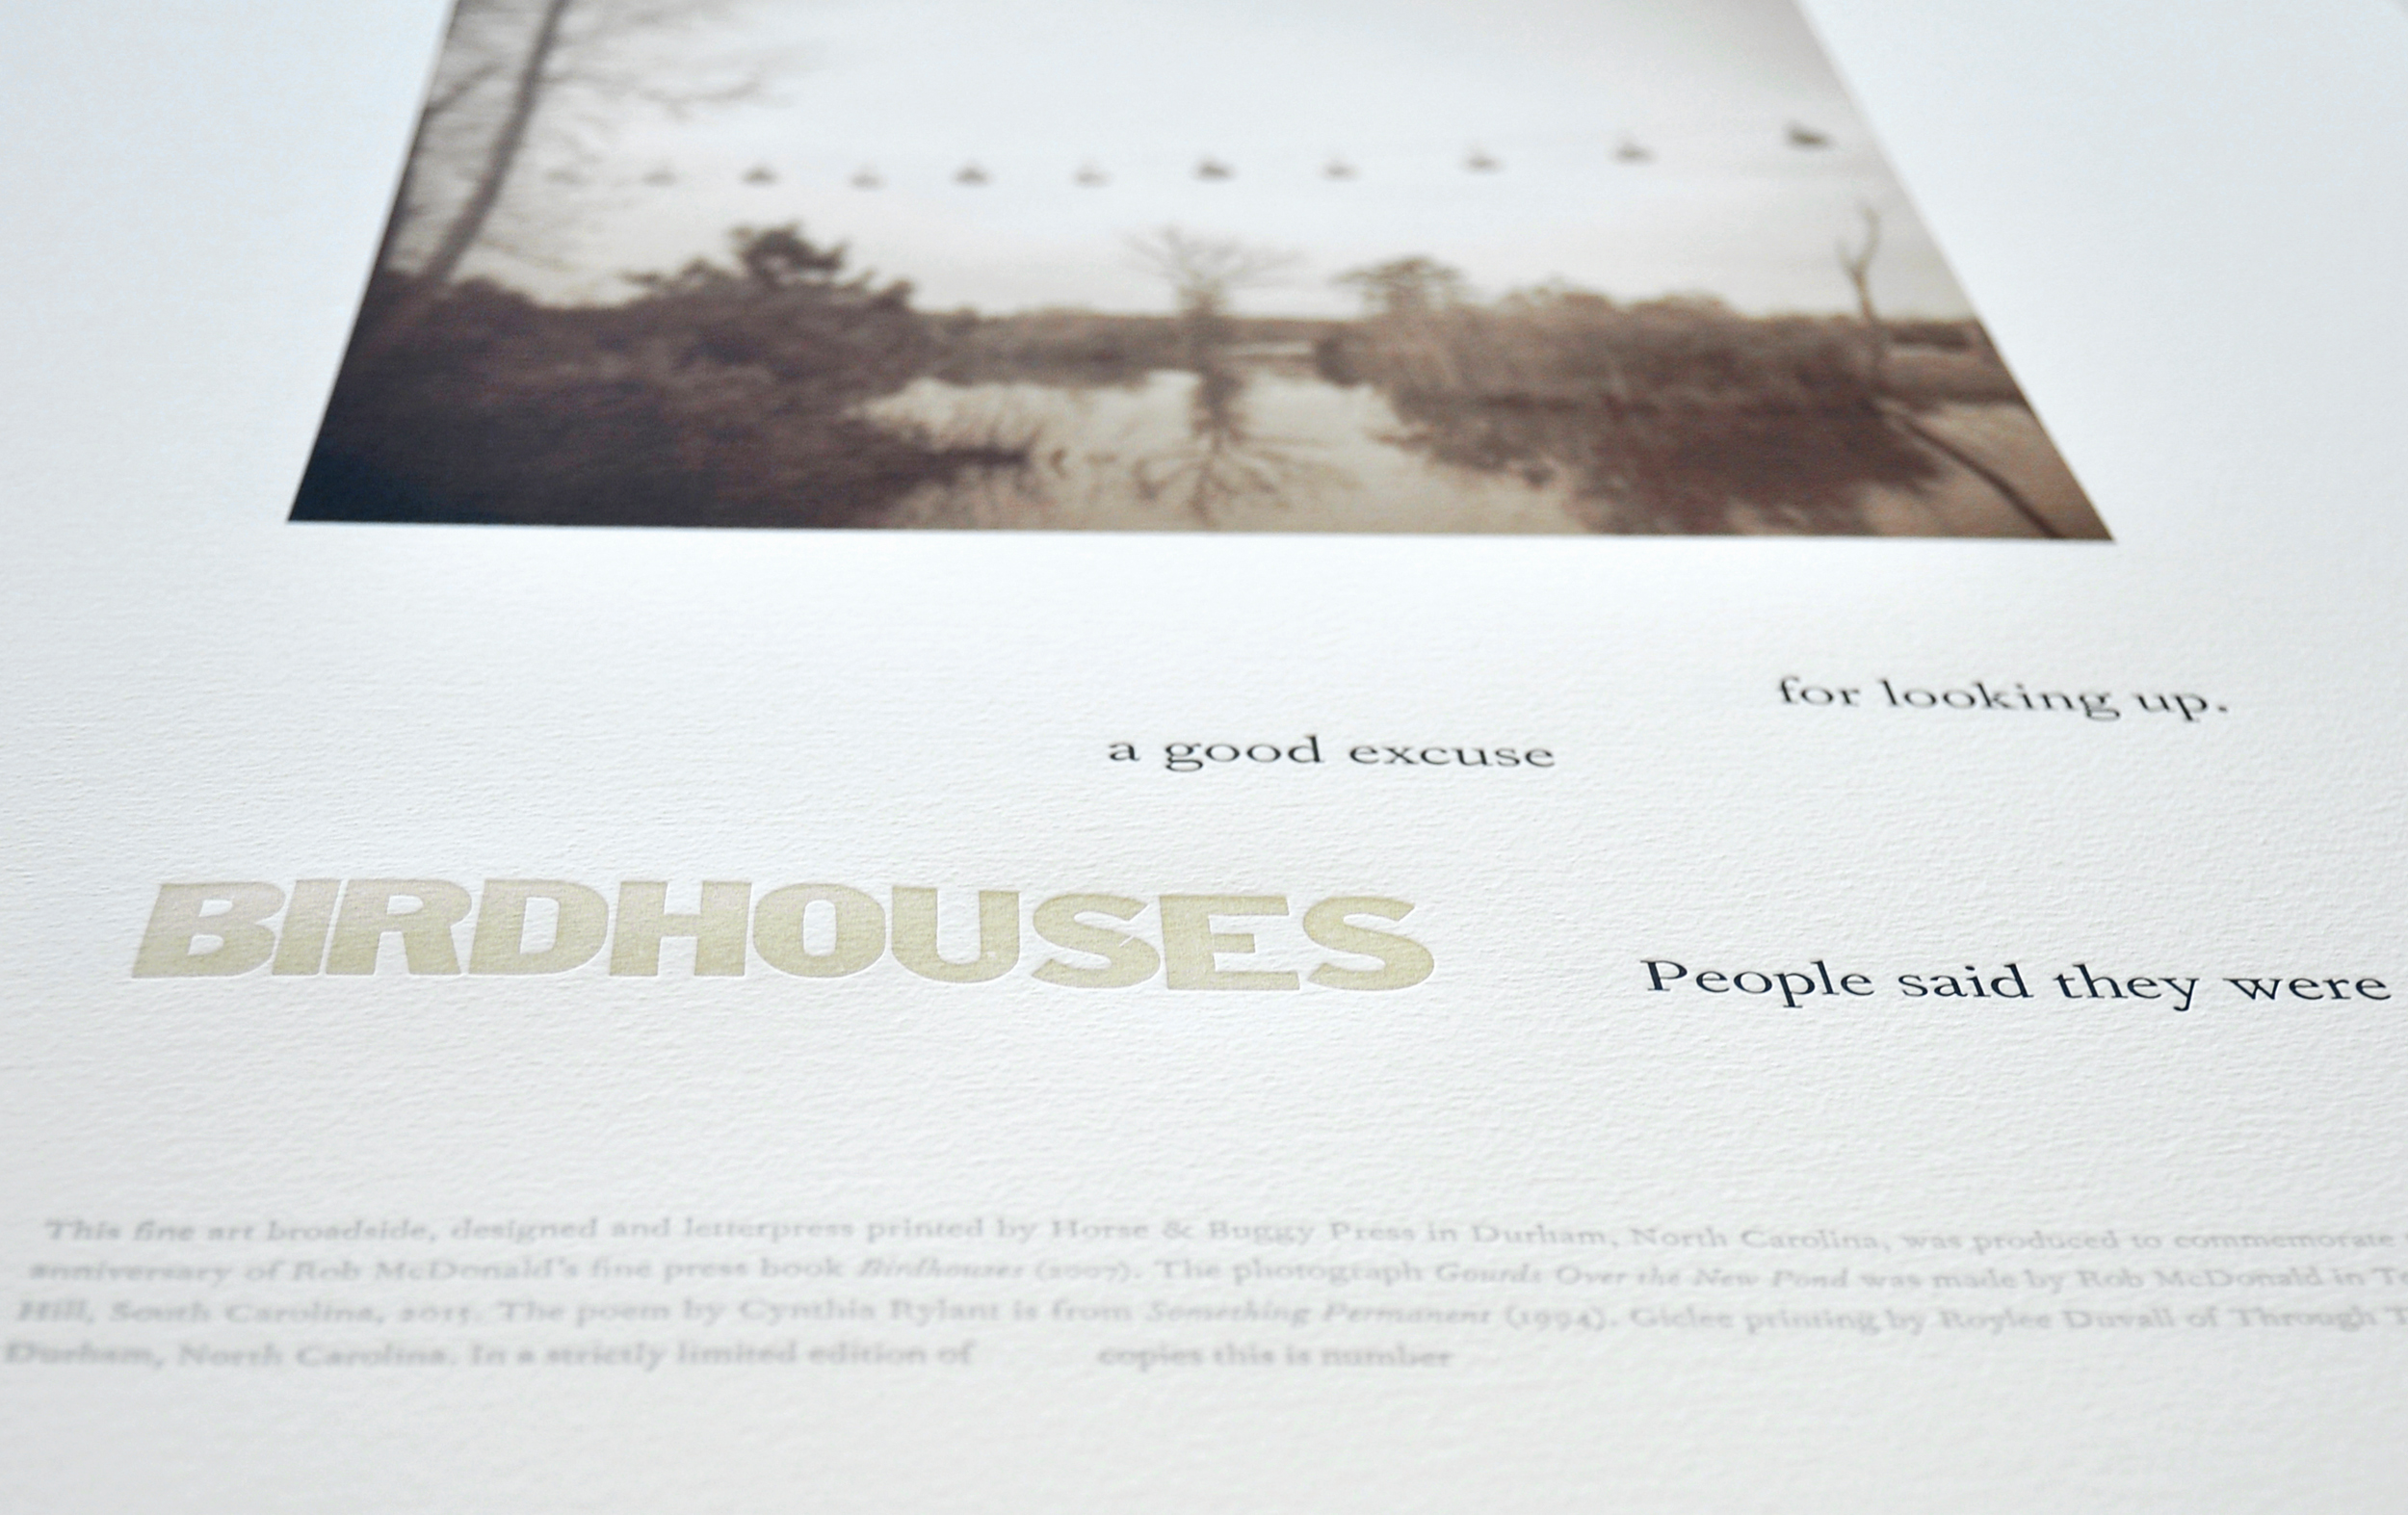 Detail of giclee/letterpress broadside. An edition of 54 copies was created to celebrate the ten year anniversary of the Birdhouses fine press title which featured photographs and writing by Rob McDonald.